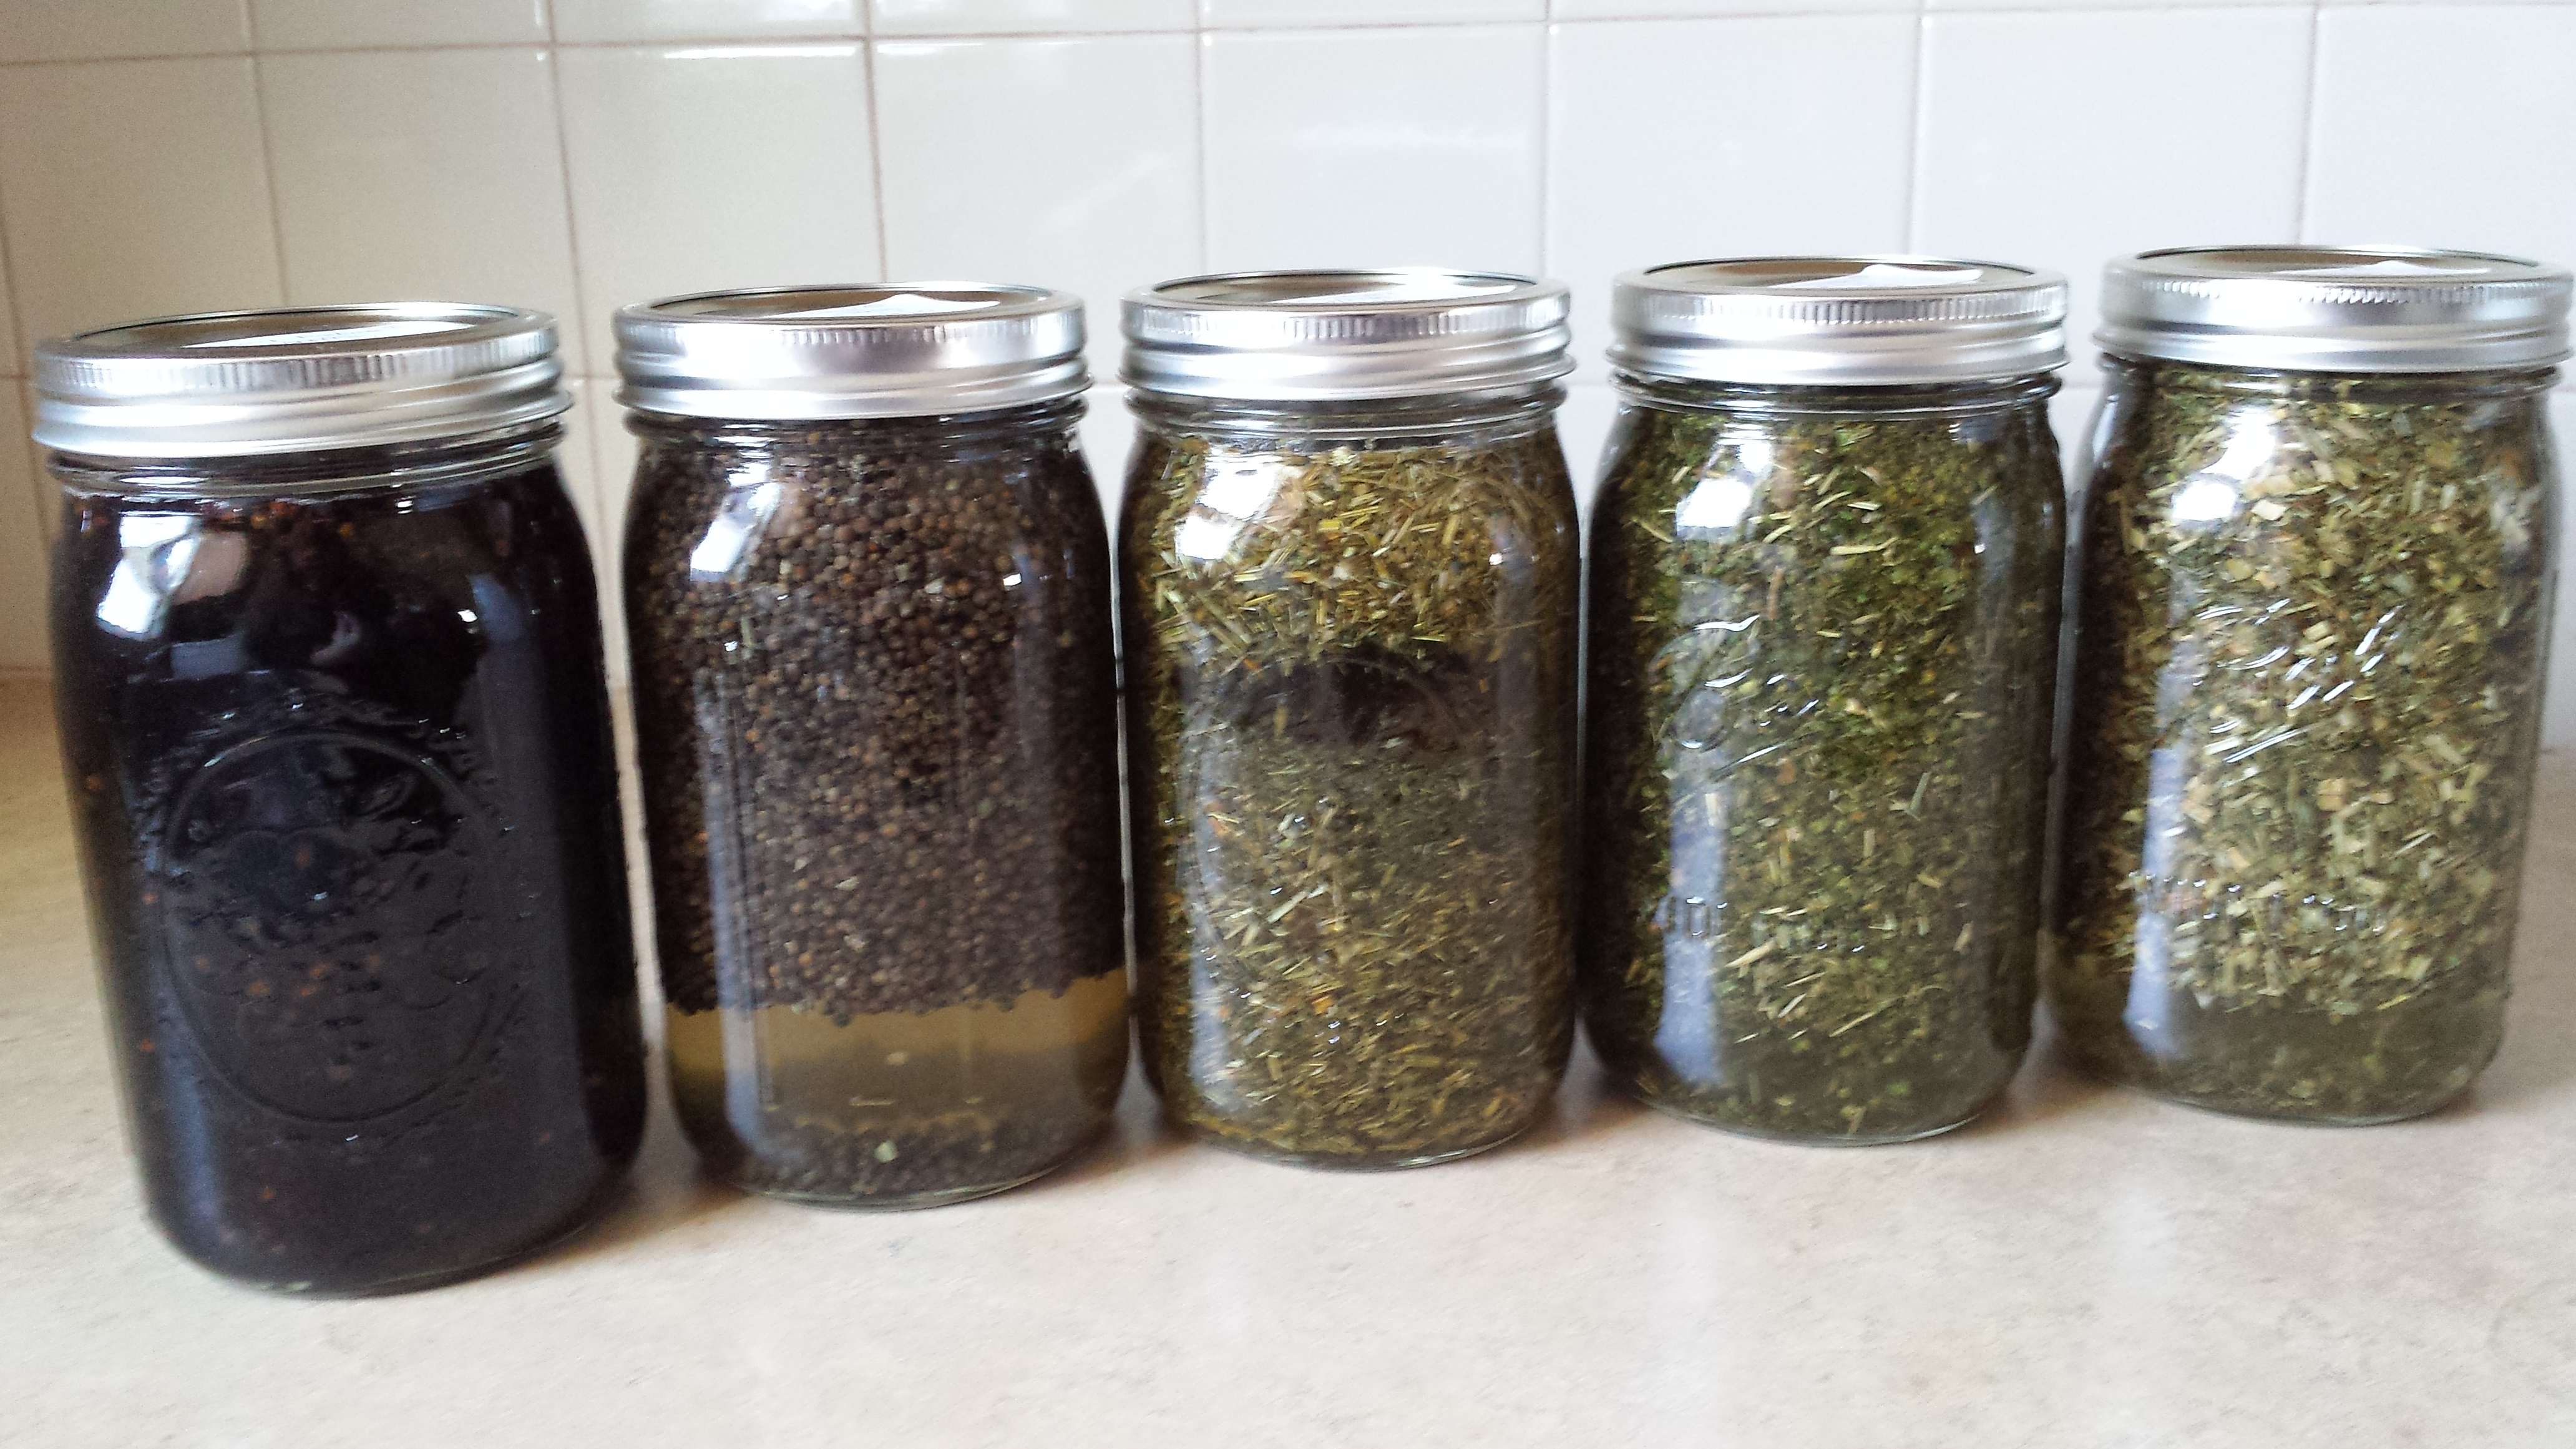 Preparation and Dosage: Teas and Tinctures - Herbal Prepper